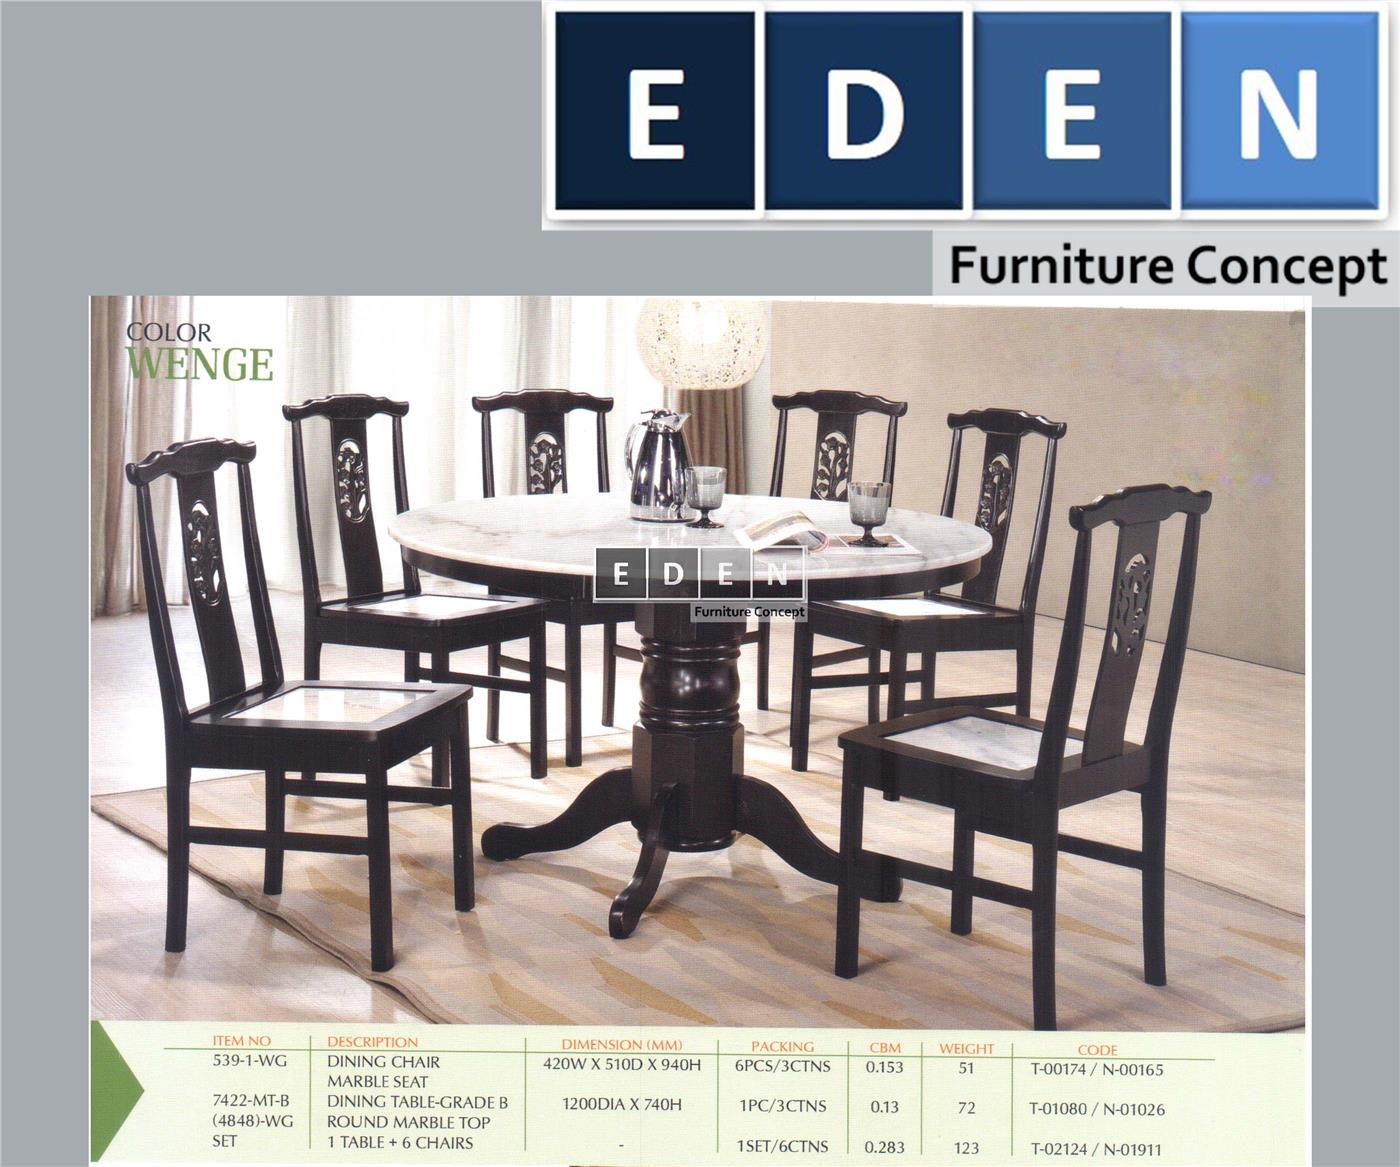 FURNITURE MALAYSIA KITCHEN DINING end 5242017 515 PM : furniture malaysia kitchen dining table set meja makan set 7422 kykstore 1505 25 KYKstore1 from www.lelong.com.my size 1400 x 1167 jpeg 194kB